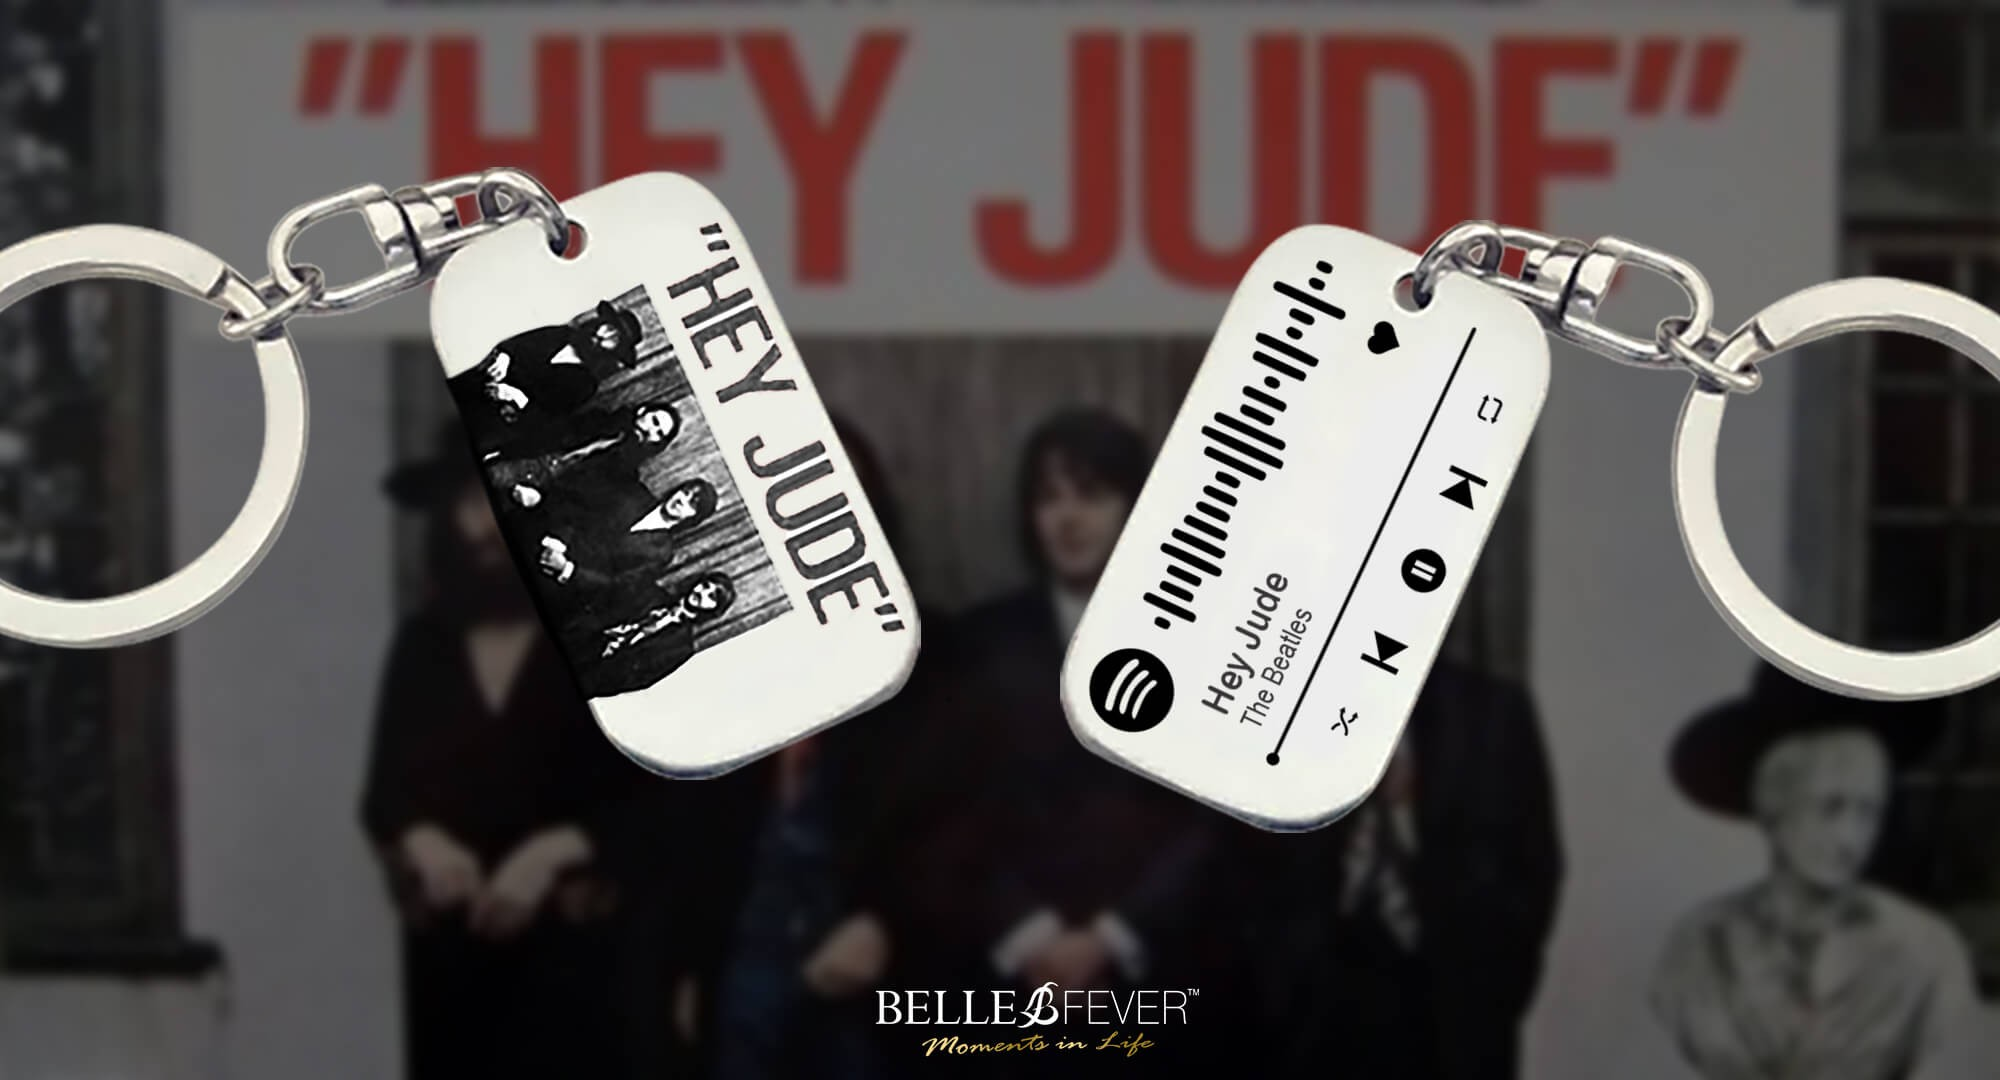 Hey Jude Music Tag Spotify Code by Belle Fever